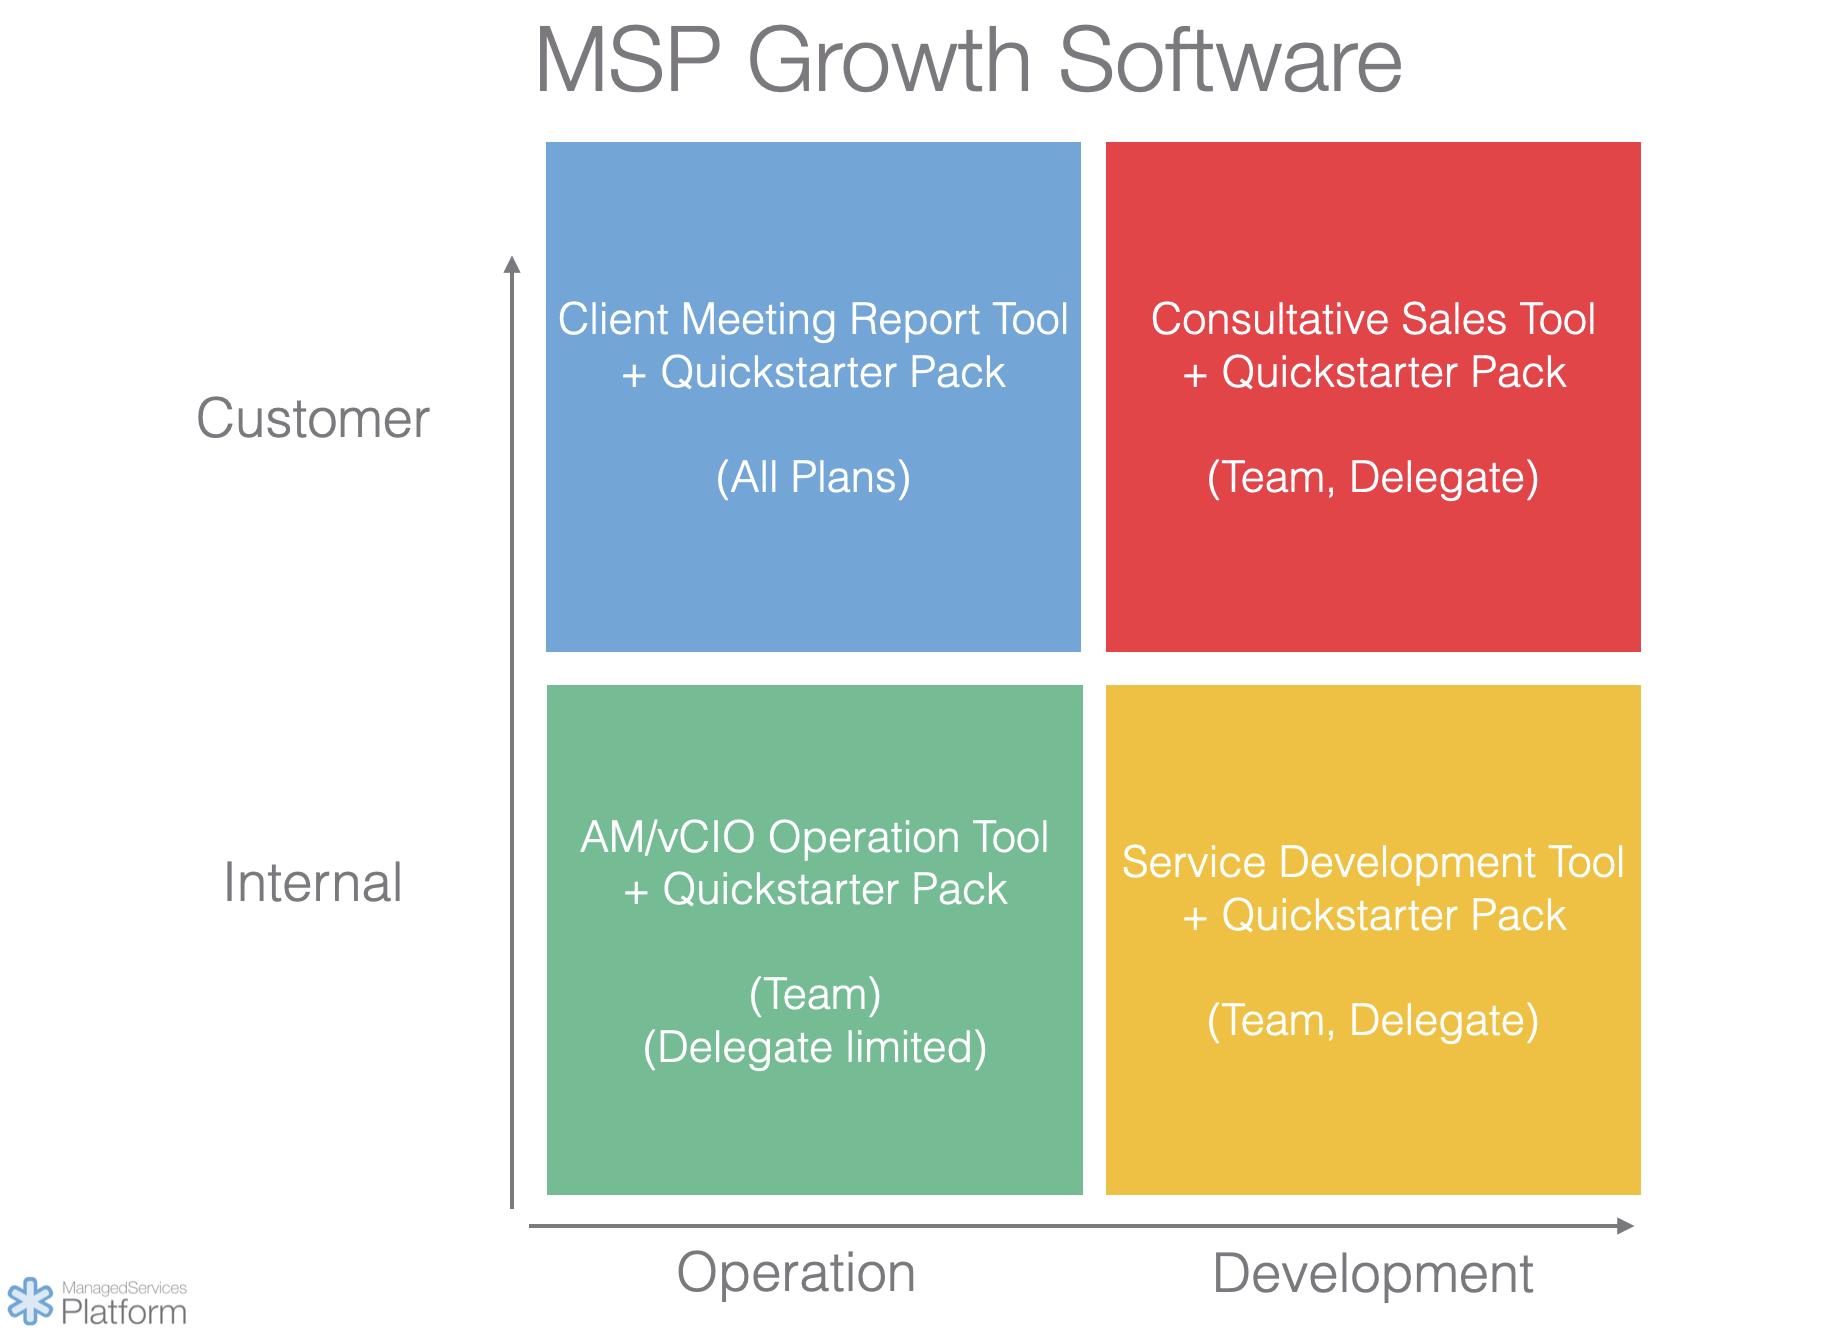 MSP growth software